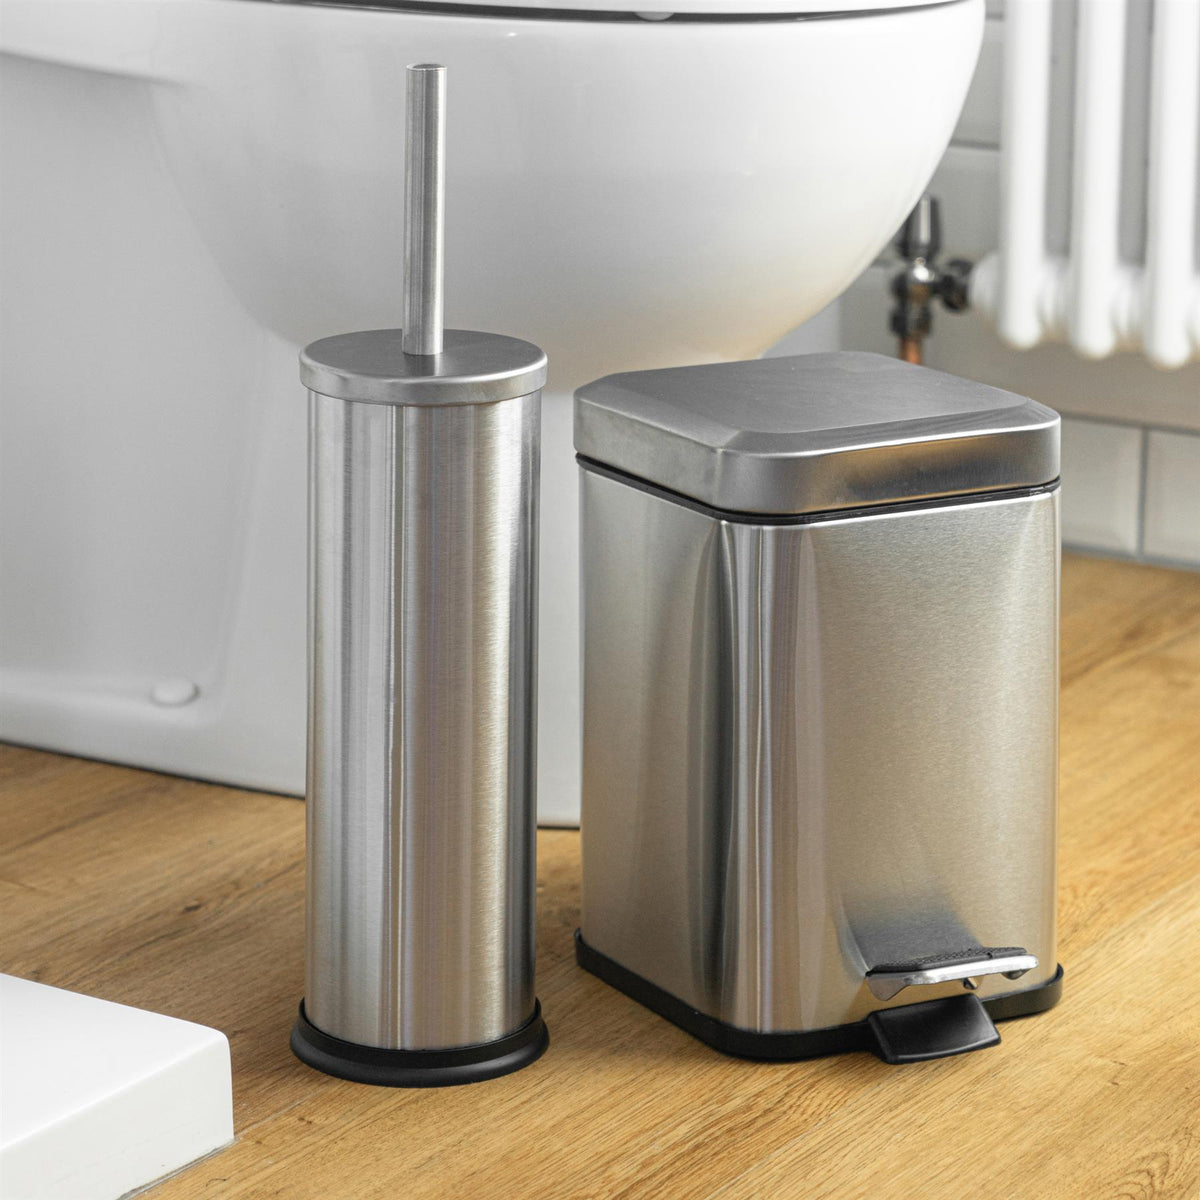 Harbour Housewares Bathroom Toilet Brush & Holder Set - Matte